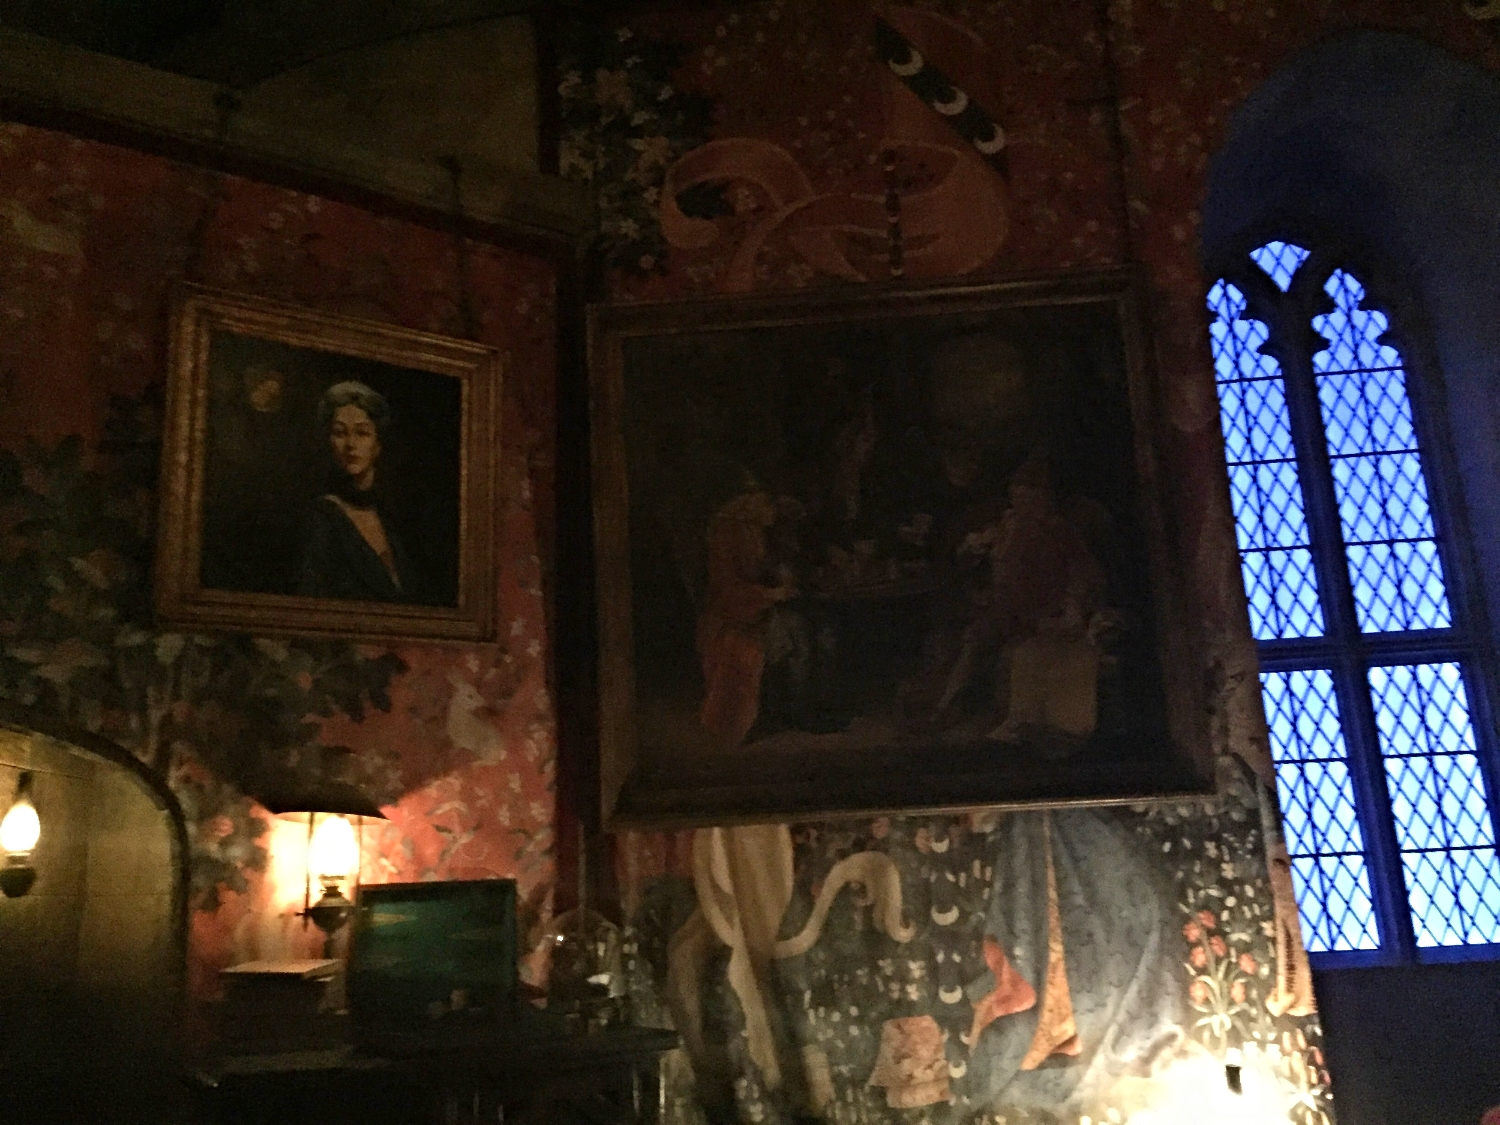 A Quick Look into the Gryffindor Common Room Waiting to Ride Forbidden Journey